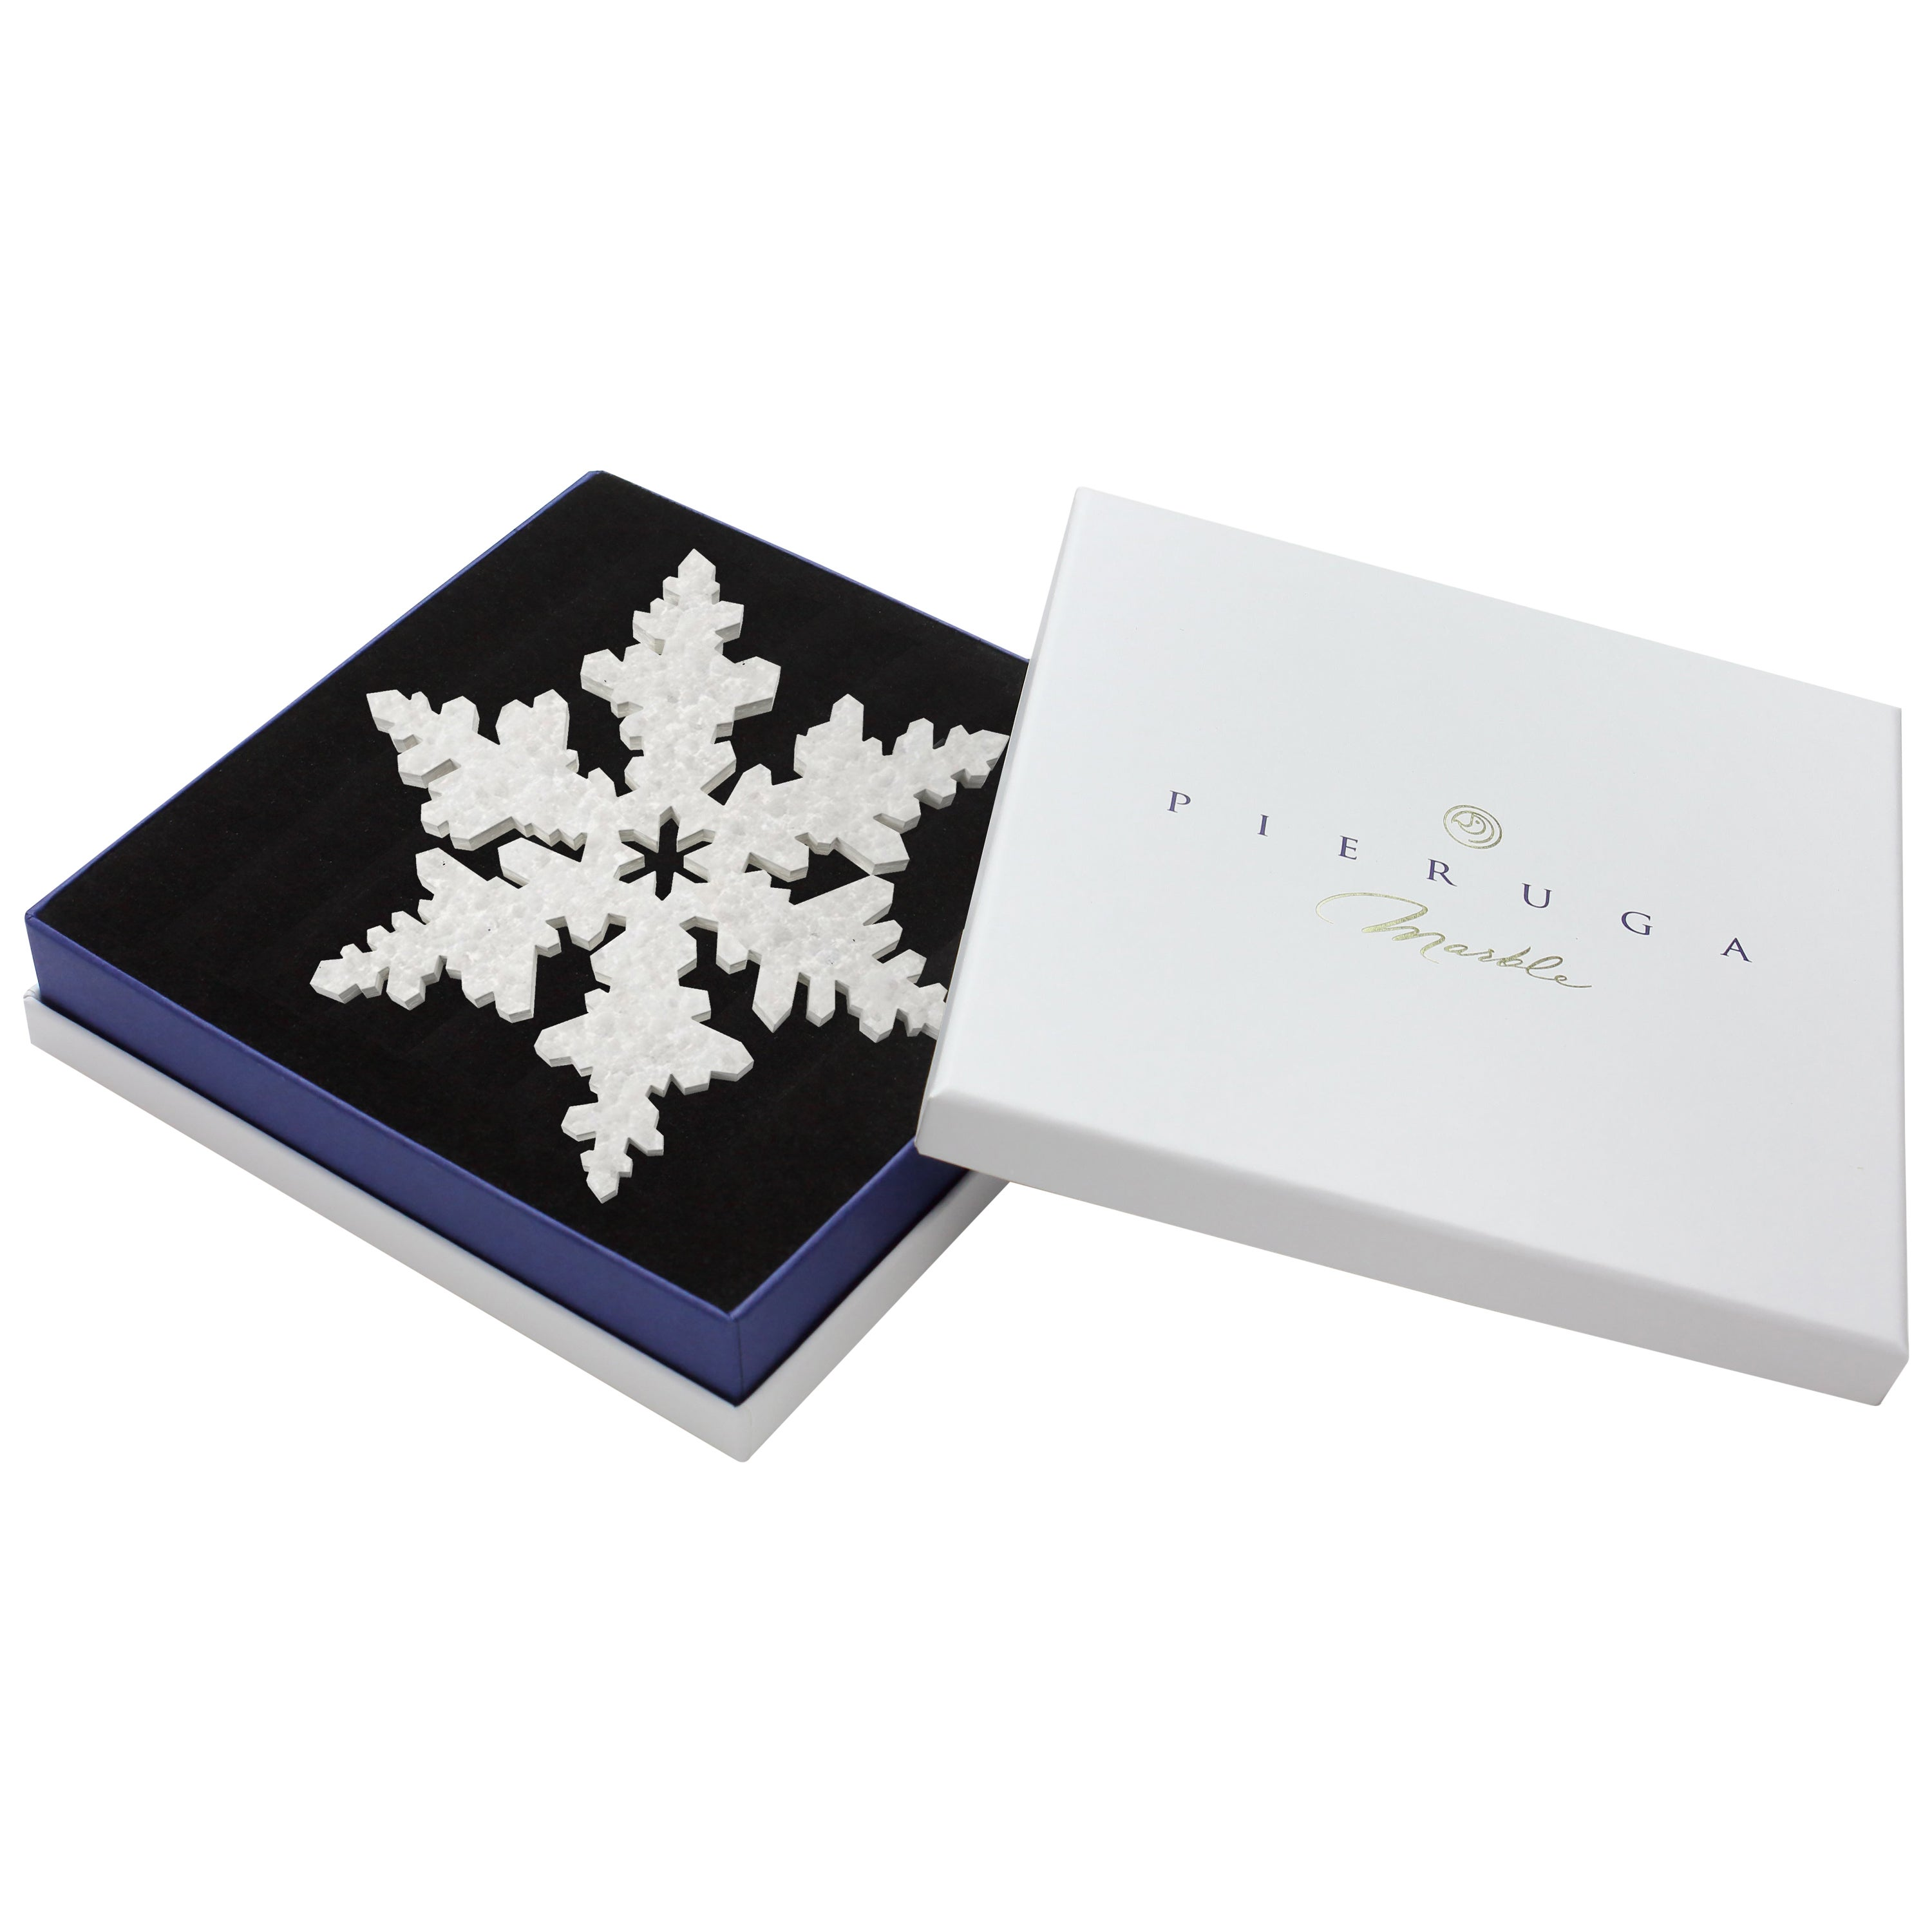 Snowflake Crystal Coaster or Christmas Tree Decoration in Marble Made in Italy